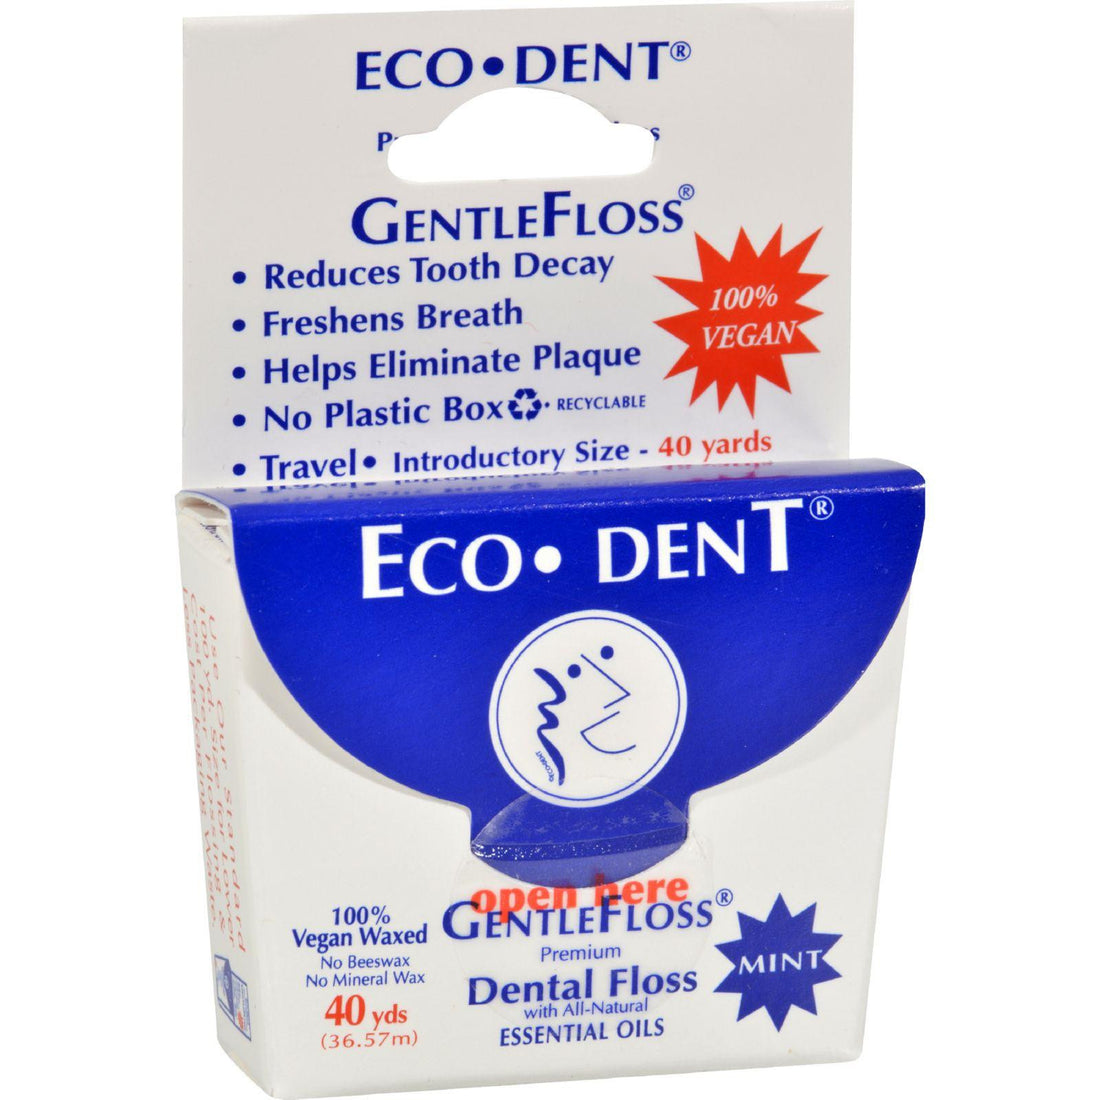 Mother Mantis: Eco-dent Gentle Floss - Mint 40 - Case Of 6 - 40 Yds Eco-dent